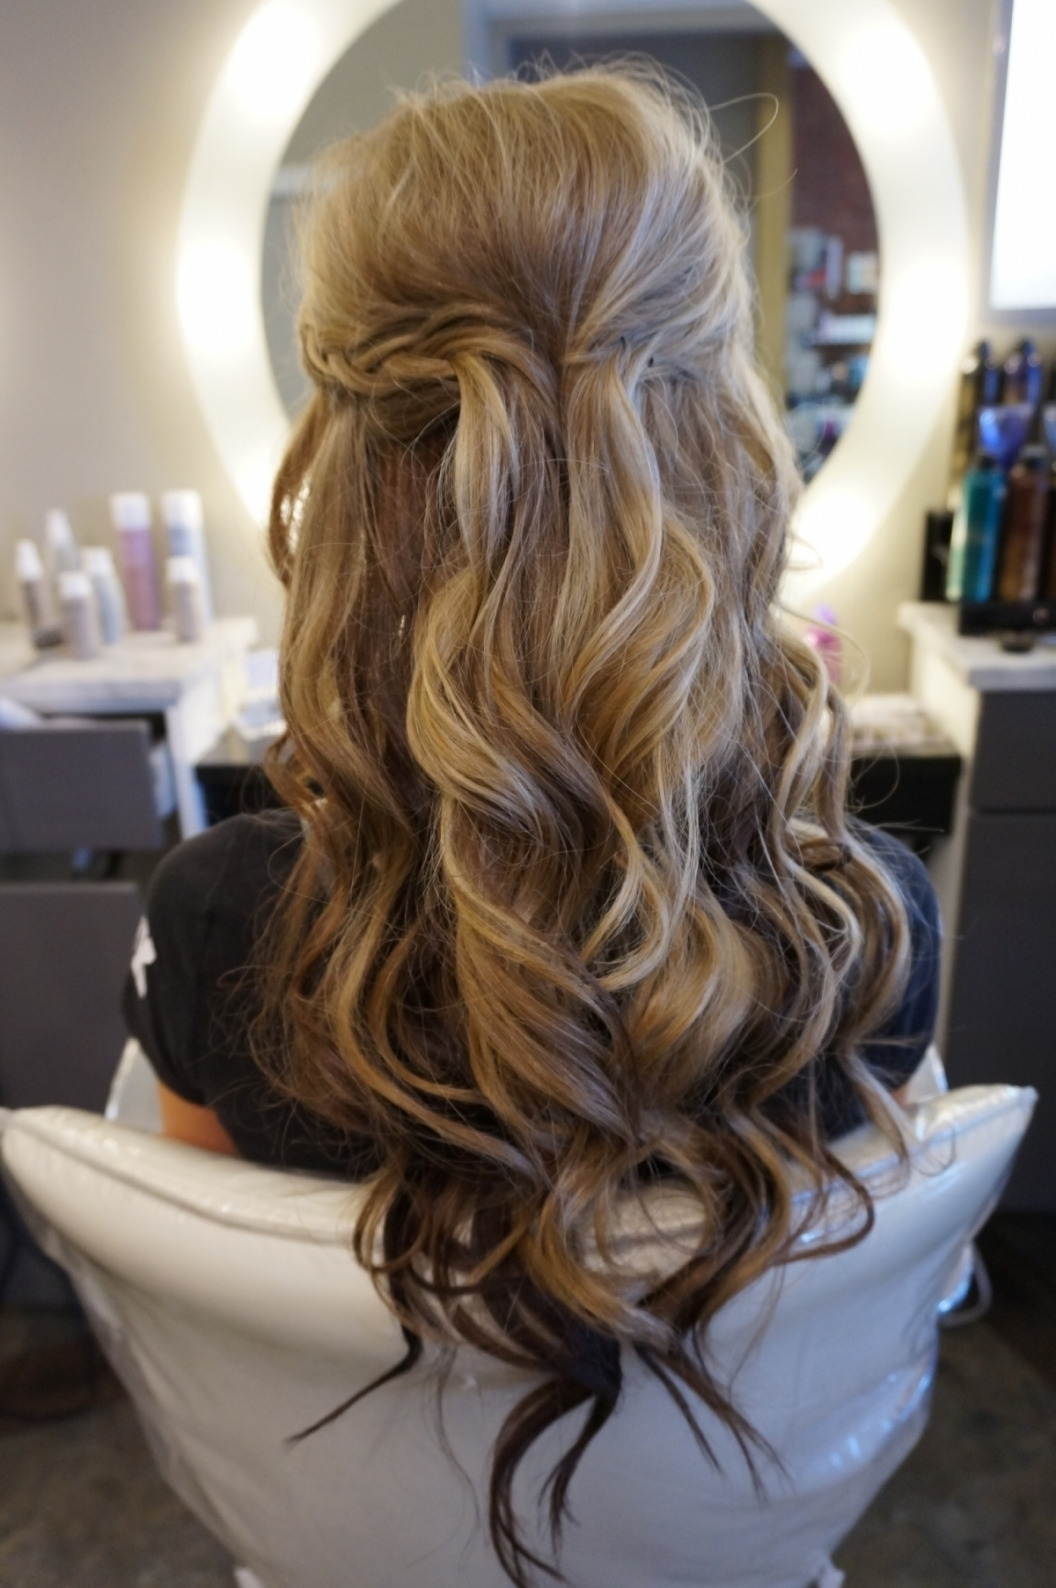 Best And Newest Half Updo Wedding Hairstyles Throughout Adorable Bride Half Updo Hairstyles With Wedding Hairstyles Half Up (View 4 of 15)